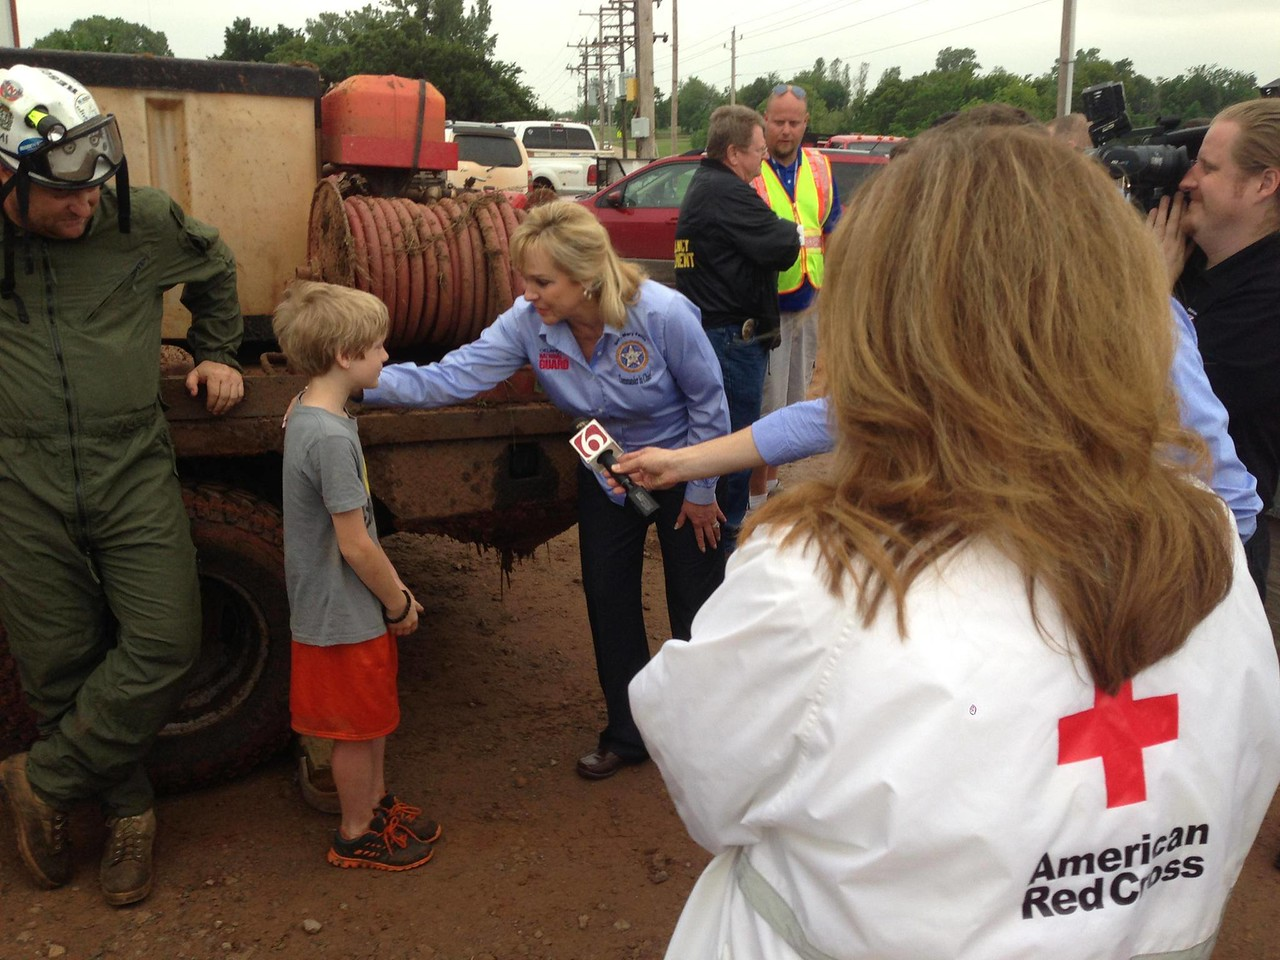 Oklahoma Governor Mary Fallin tours Carney, OK on Monday, May 20, 2013 accompanied by Red Cross staff and volunteers. (Photo courtesy of American Red Cross of Central and Western Oklahoma)